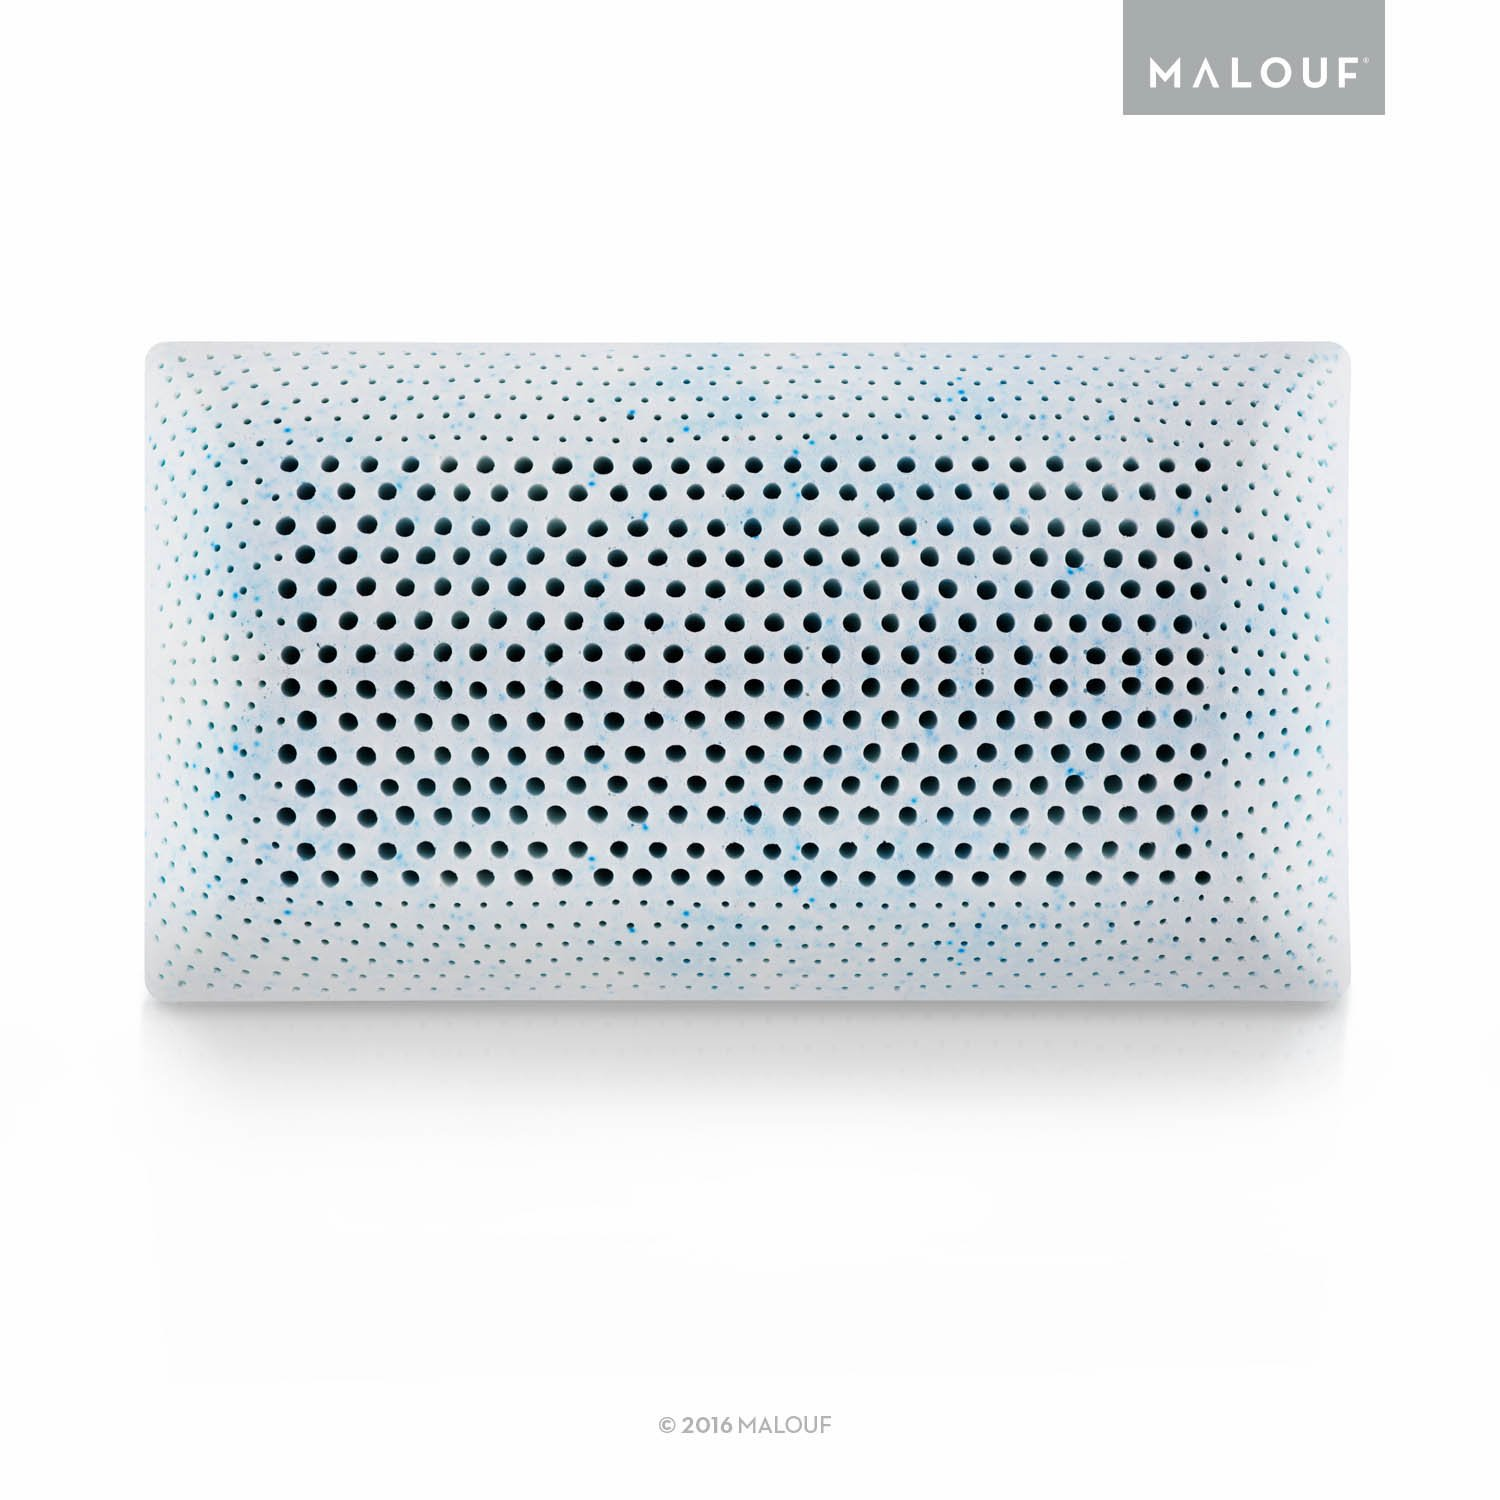 MALOUF Z Gel Infused Talalay Latex Pillow with Support Zones for Head and Neck - Queen Size, Low Loft Firm